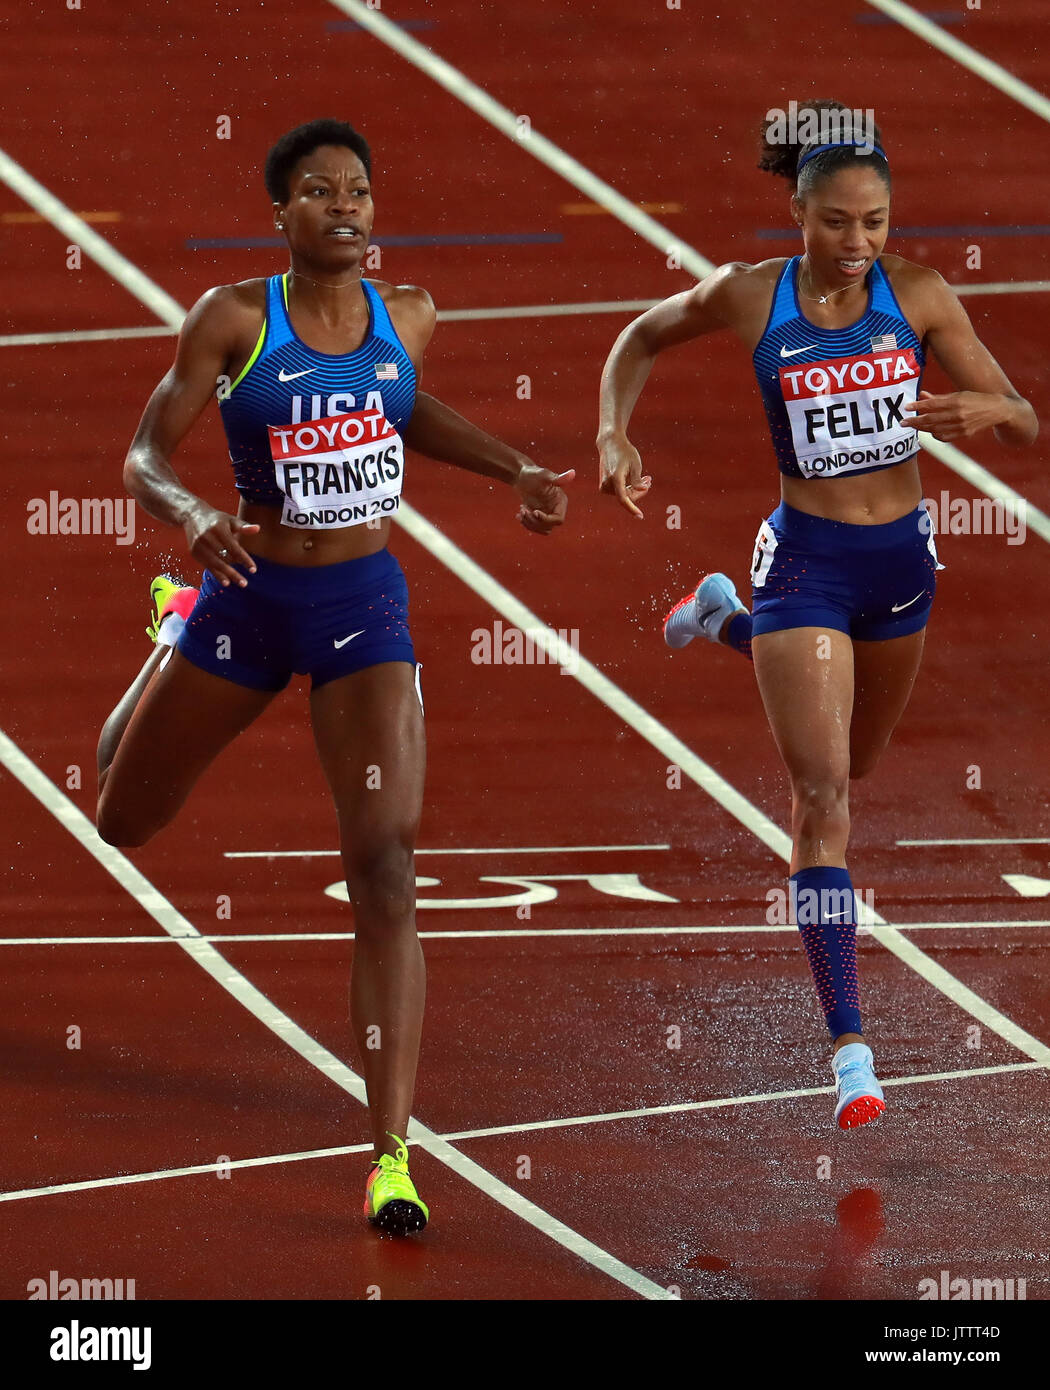 London, Britain. 9th Aug, 2017. Phyllis Francis (L) and Allyson Felix of the United States compete during Women's 400m Final on Day 6 of the 2017 IAAF World Championships at London Stadium in London, Britain, on Aug. 9, 2017. Phyllis Francis claimed the title with 49.92 seconds. Allyson Felix won the bronze medal. Credit: Luo Huanhuan/Xinhua/Alamy Live News - Stock Image